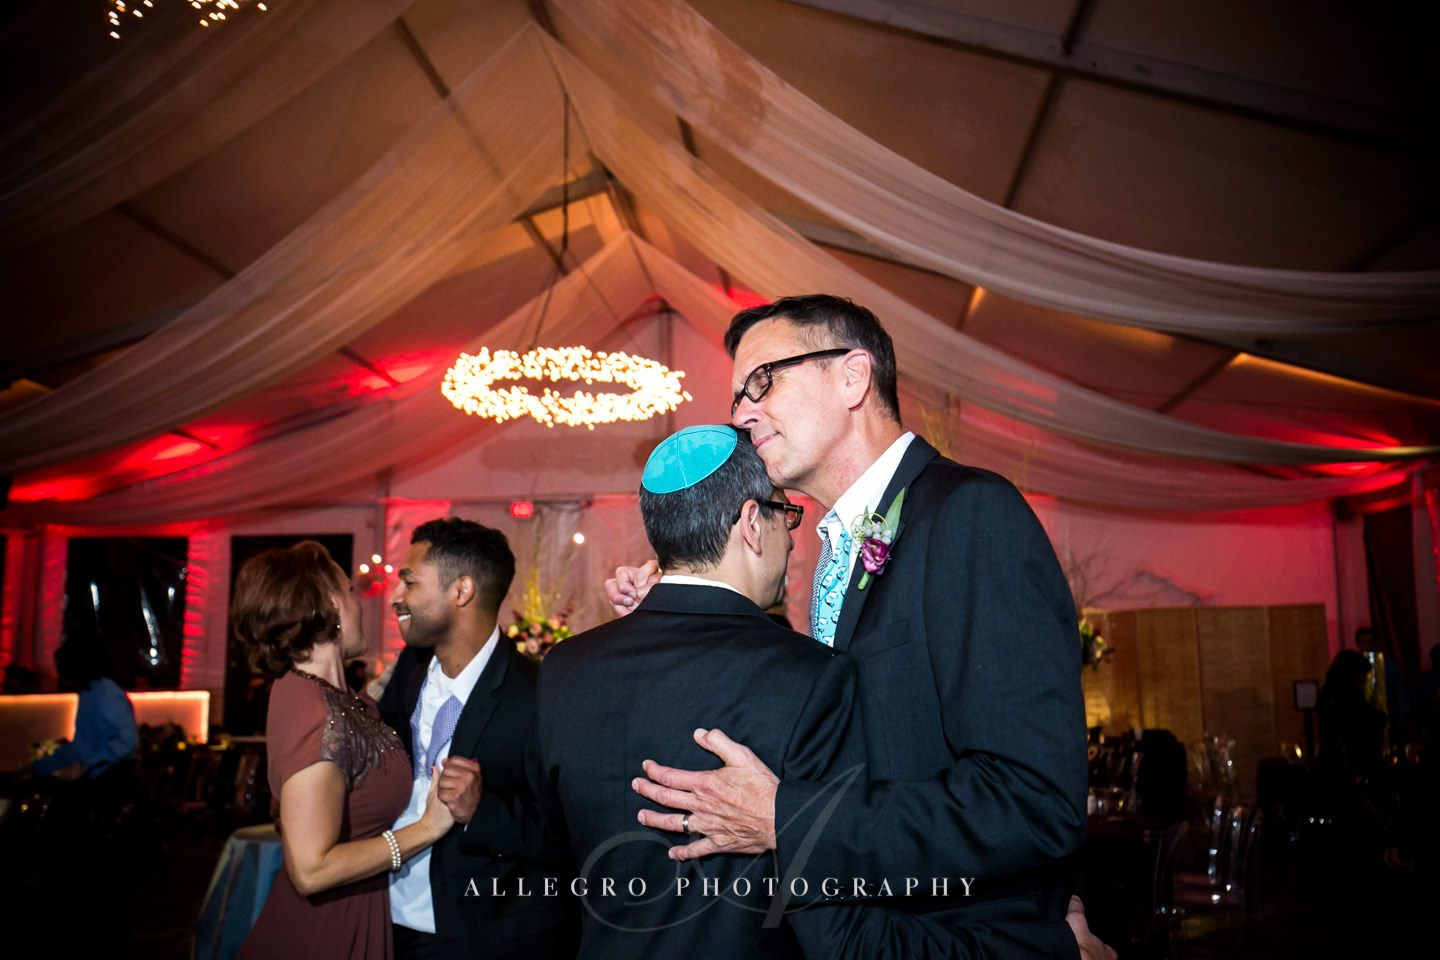 last dance - photo by Allegro Photography